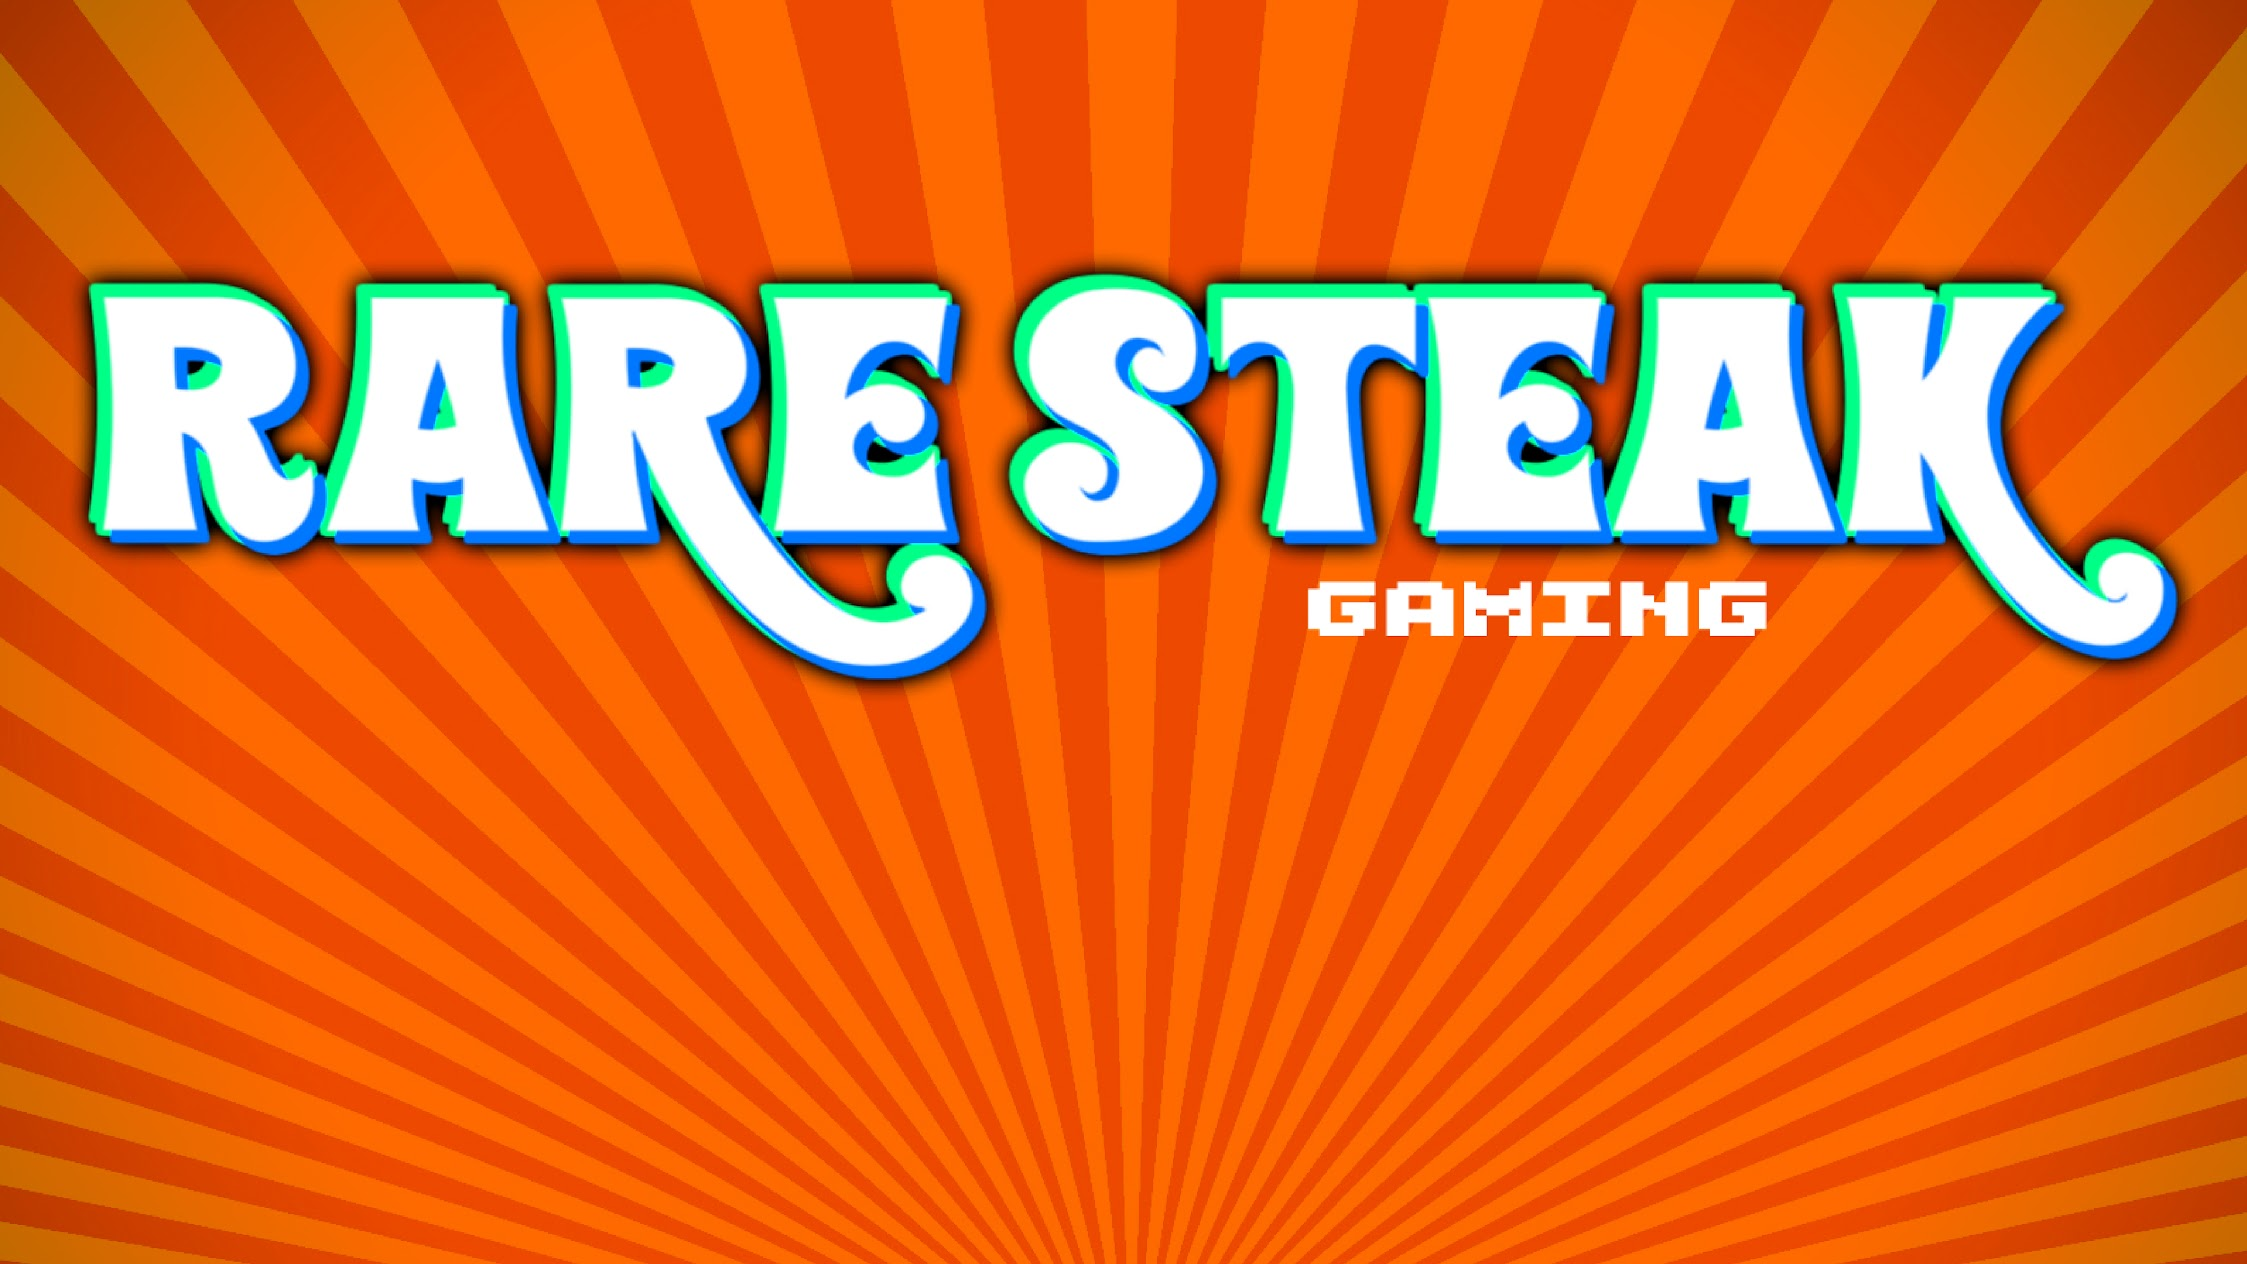 Rare Steak Gaming